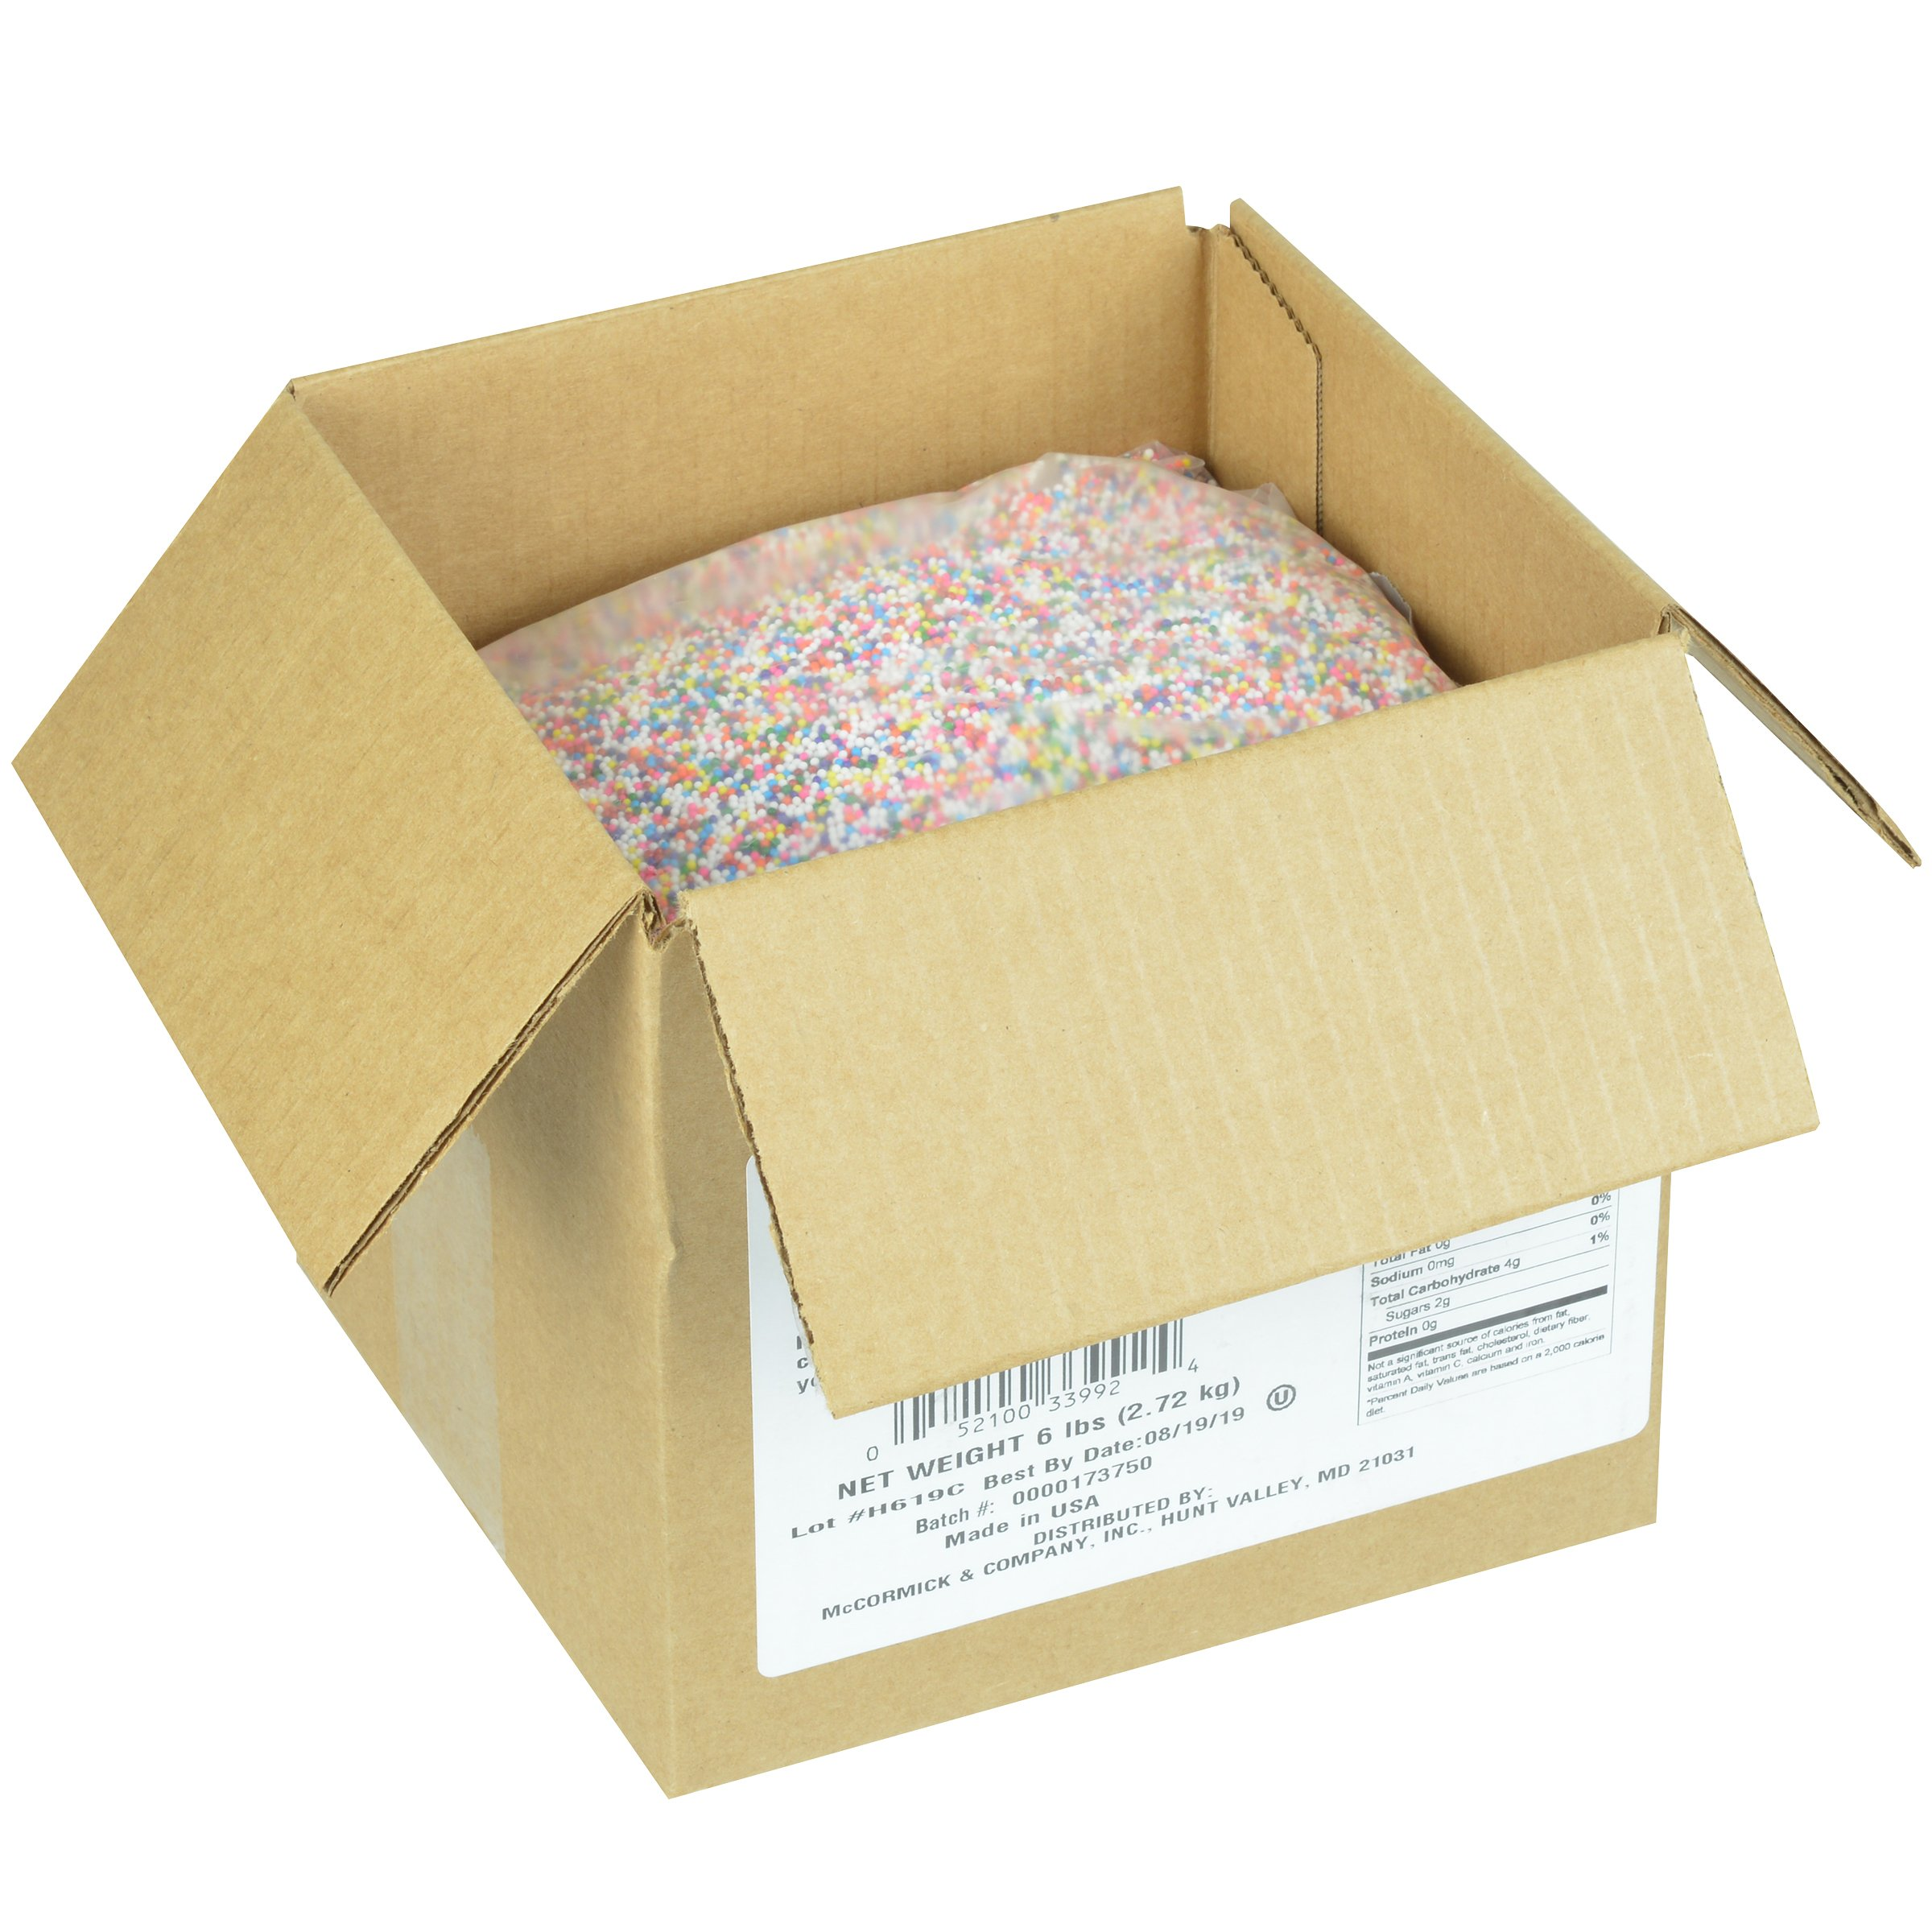 McCormick Culinary Assorted Multi-Colored Sprinkles, 6 lbs by McCormick